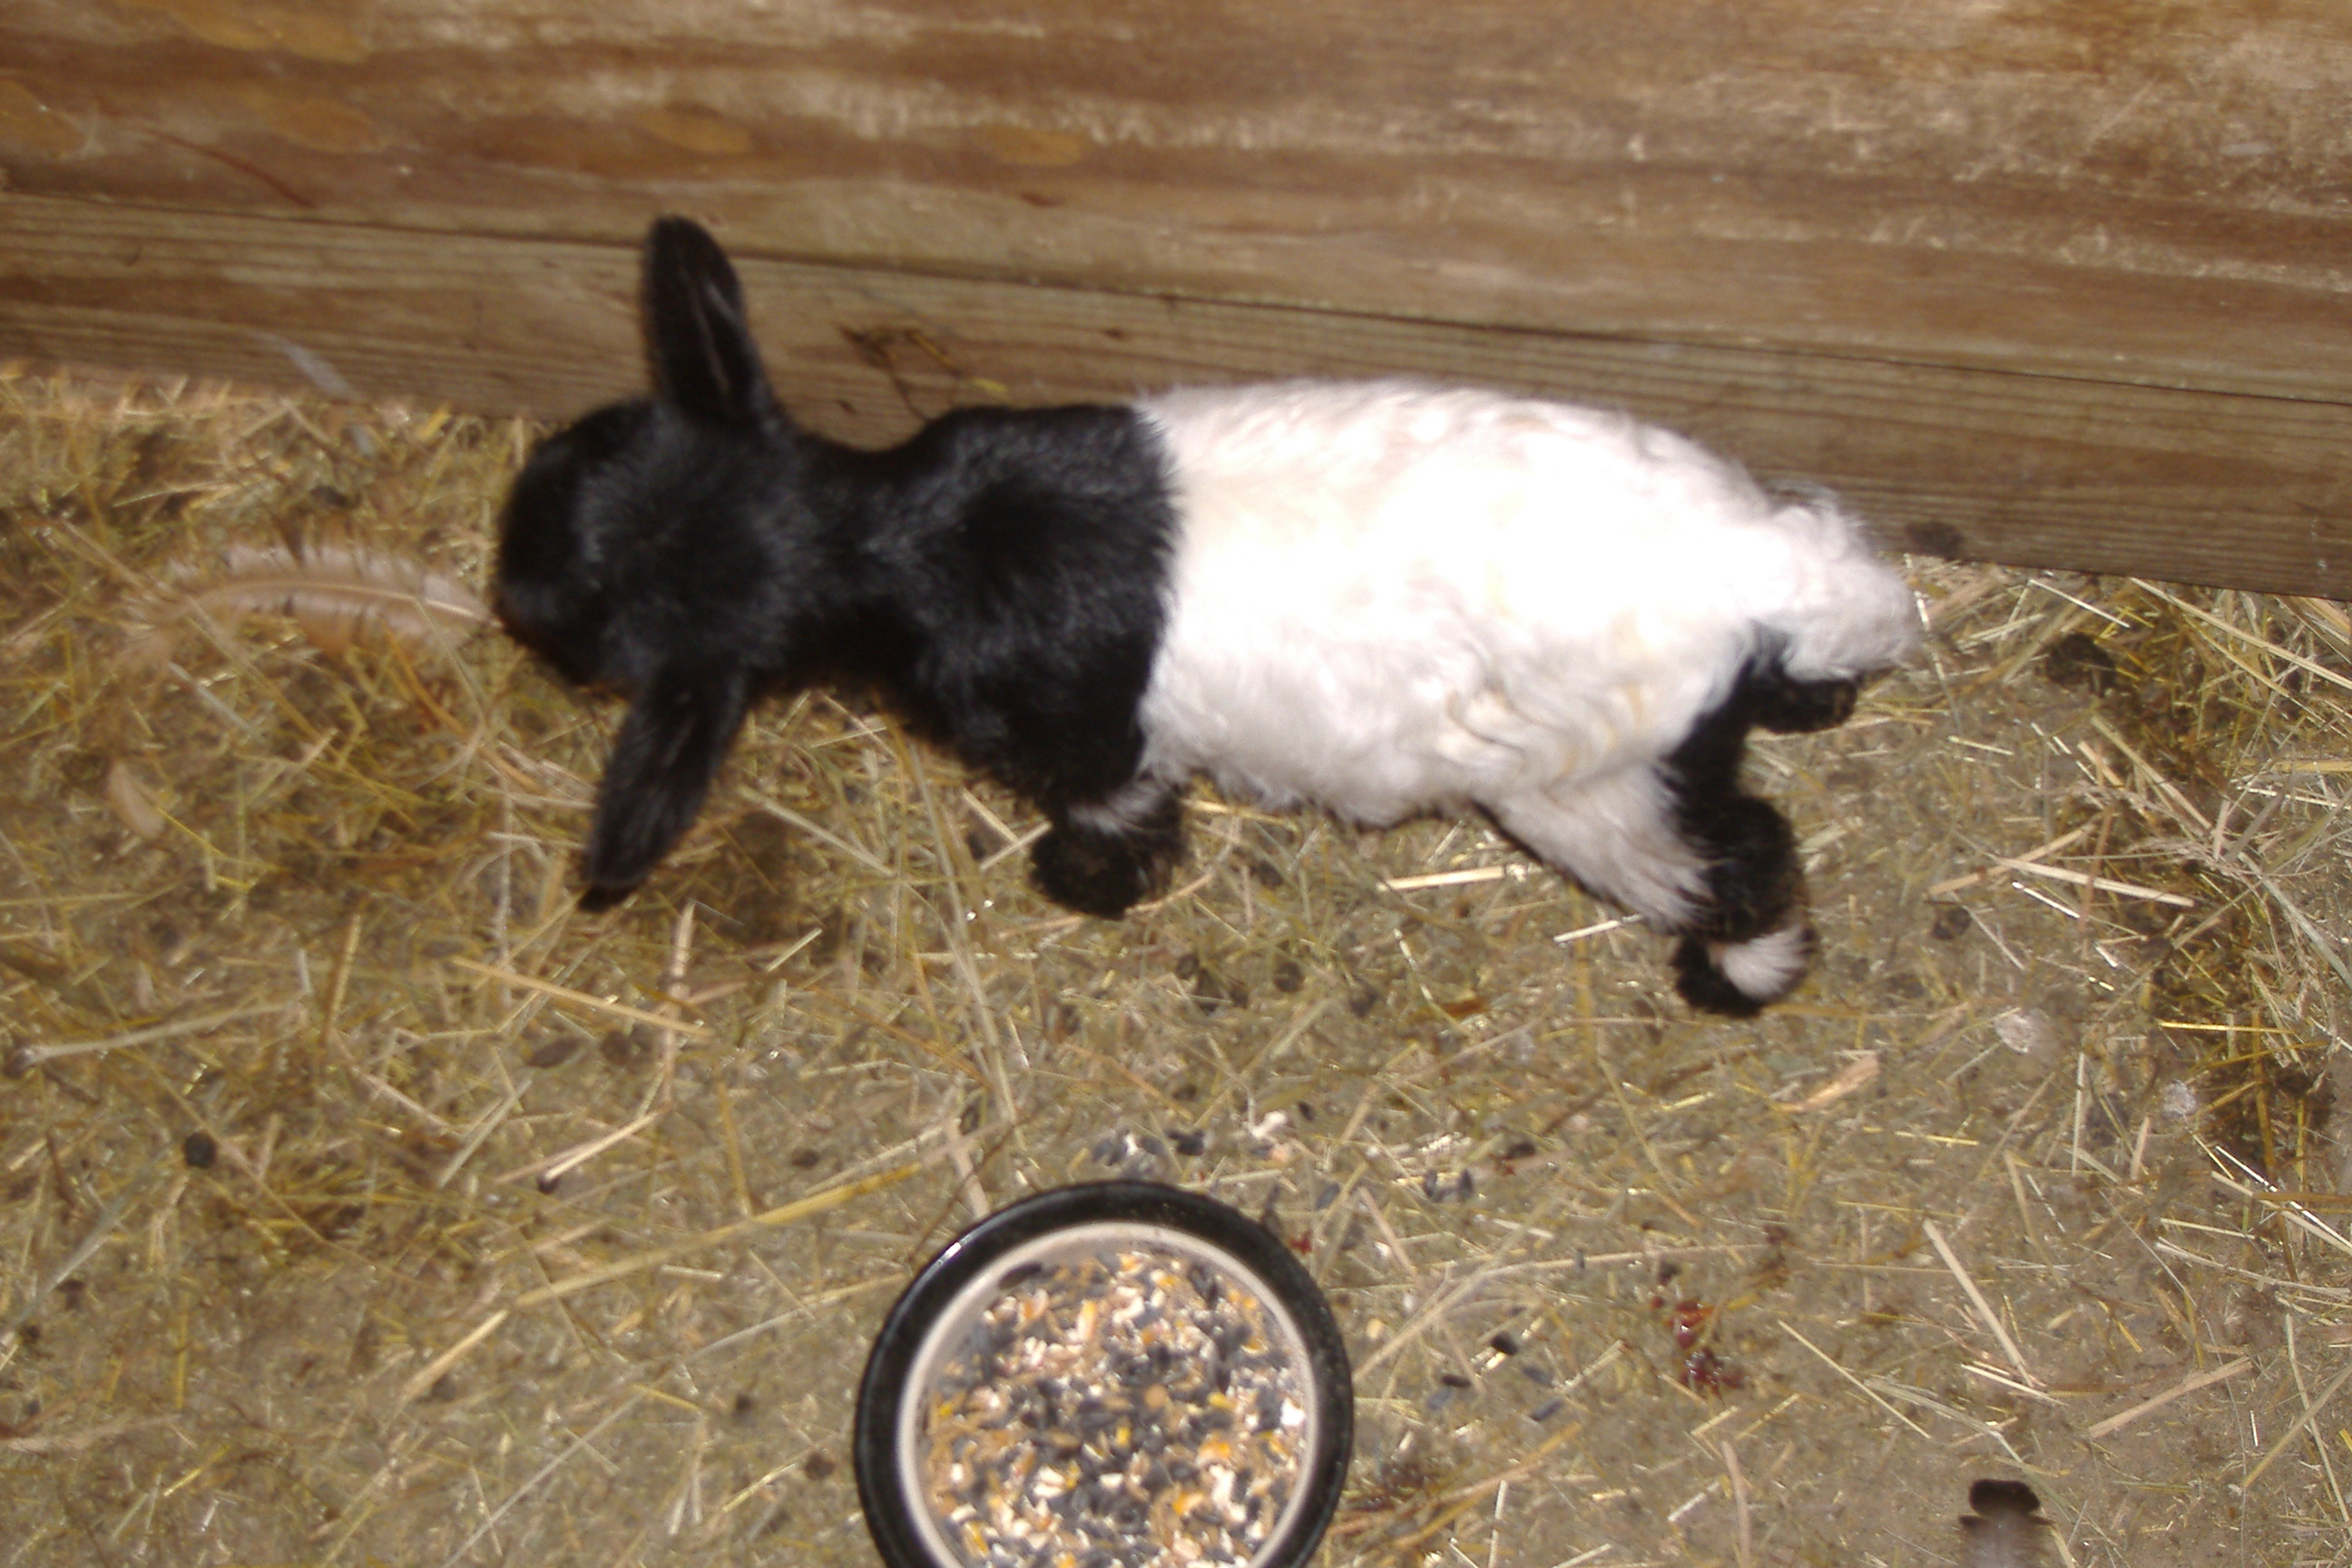 The Far Most Common Color In Fainting Goat A Very Pattern Is Black Head Neck And White Back Behind